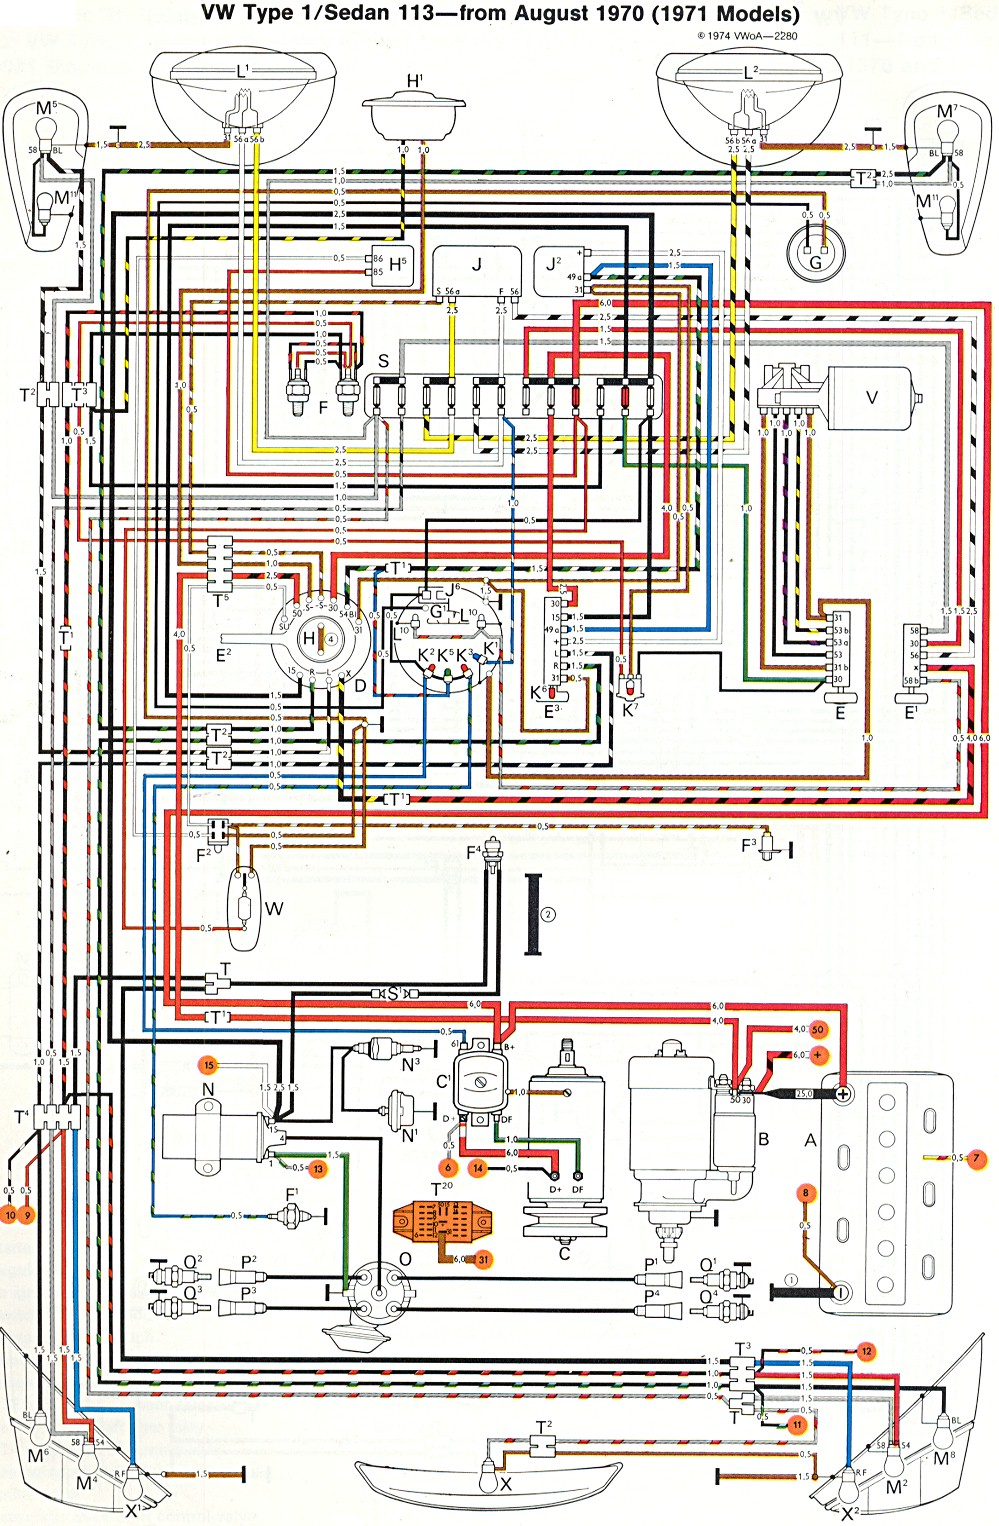 74 vw super beetle wiring diagram data wiring diagram u2022 rh vitaleapp co 1973 Super Beetle Heater Diagram 1974 VW Super Beetle Alternator Diagram